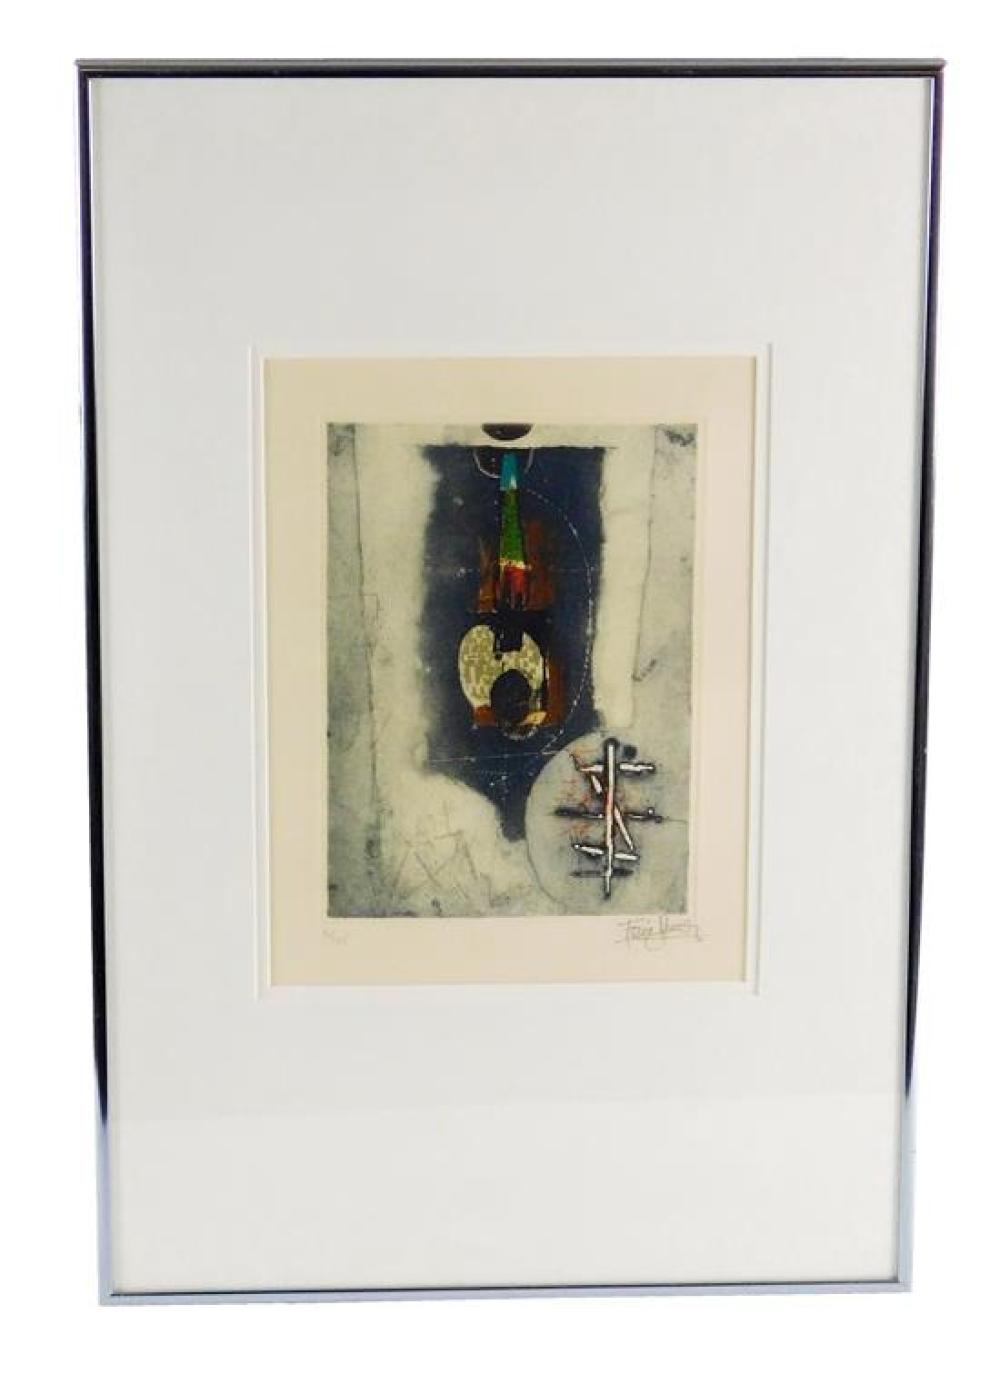 """Johnny Friedlander (Germany, 1912-1992), """"Le Voyage"""", etching, 1975, ed: 95, signed with pencil lower right, inscribed with pencil """"..."""